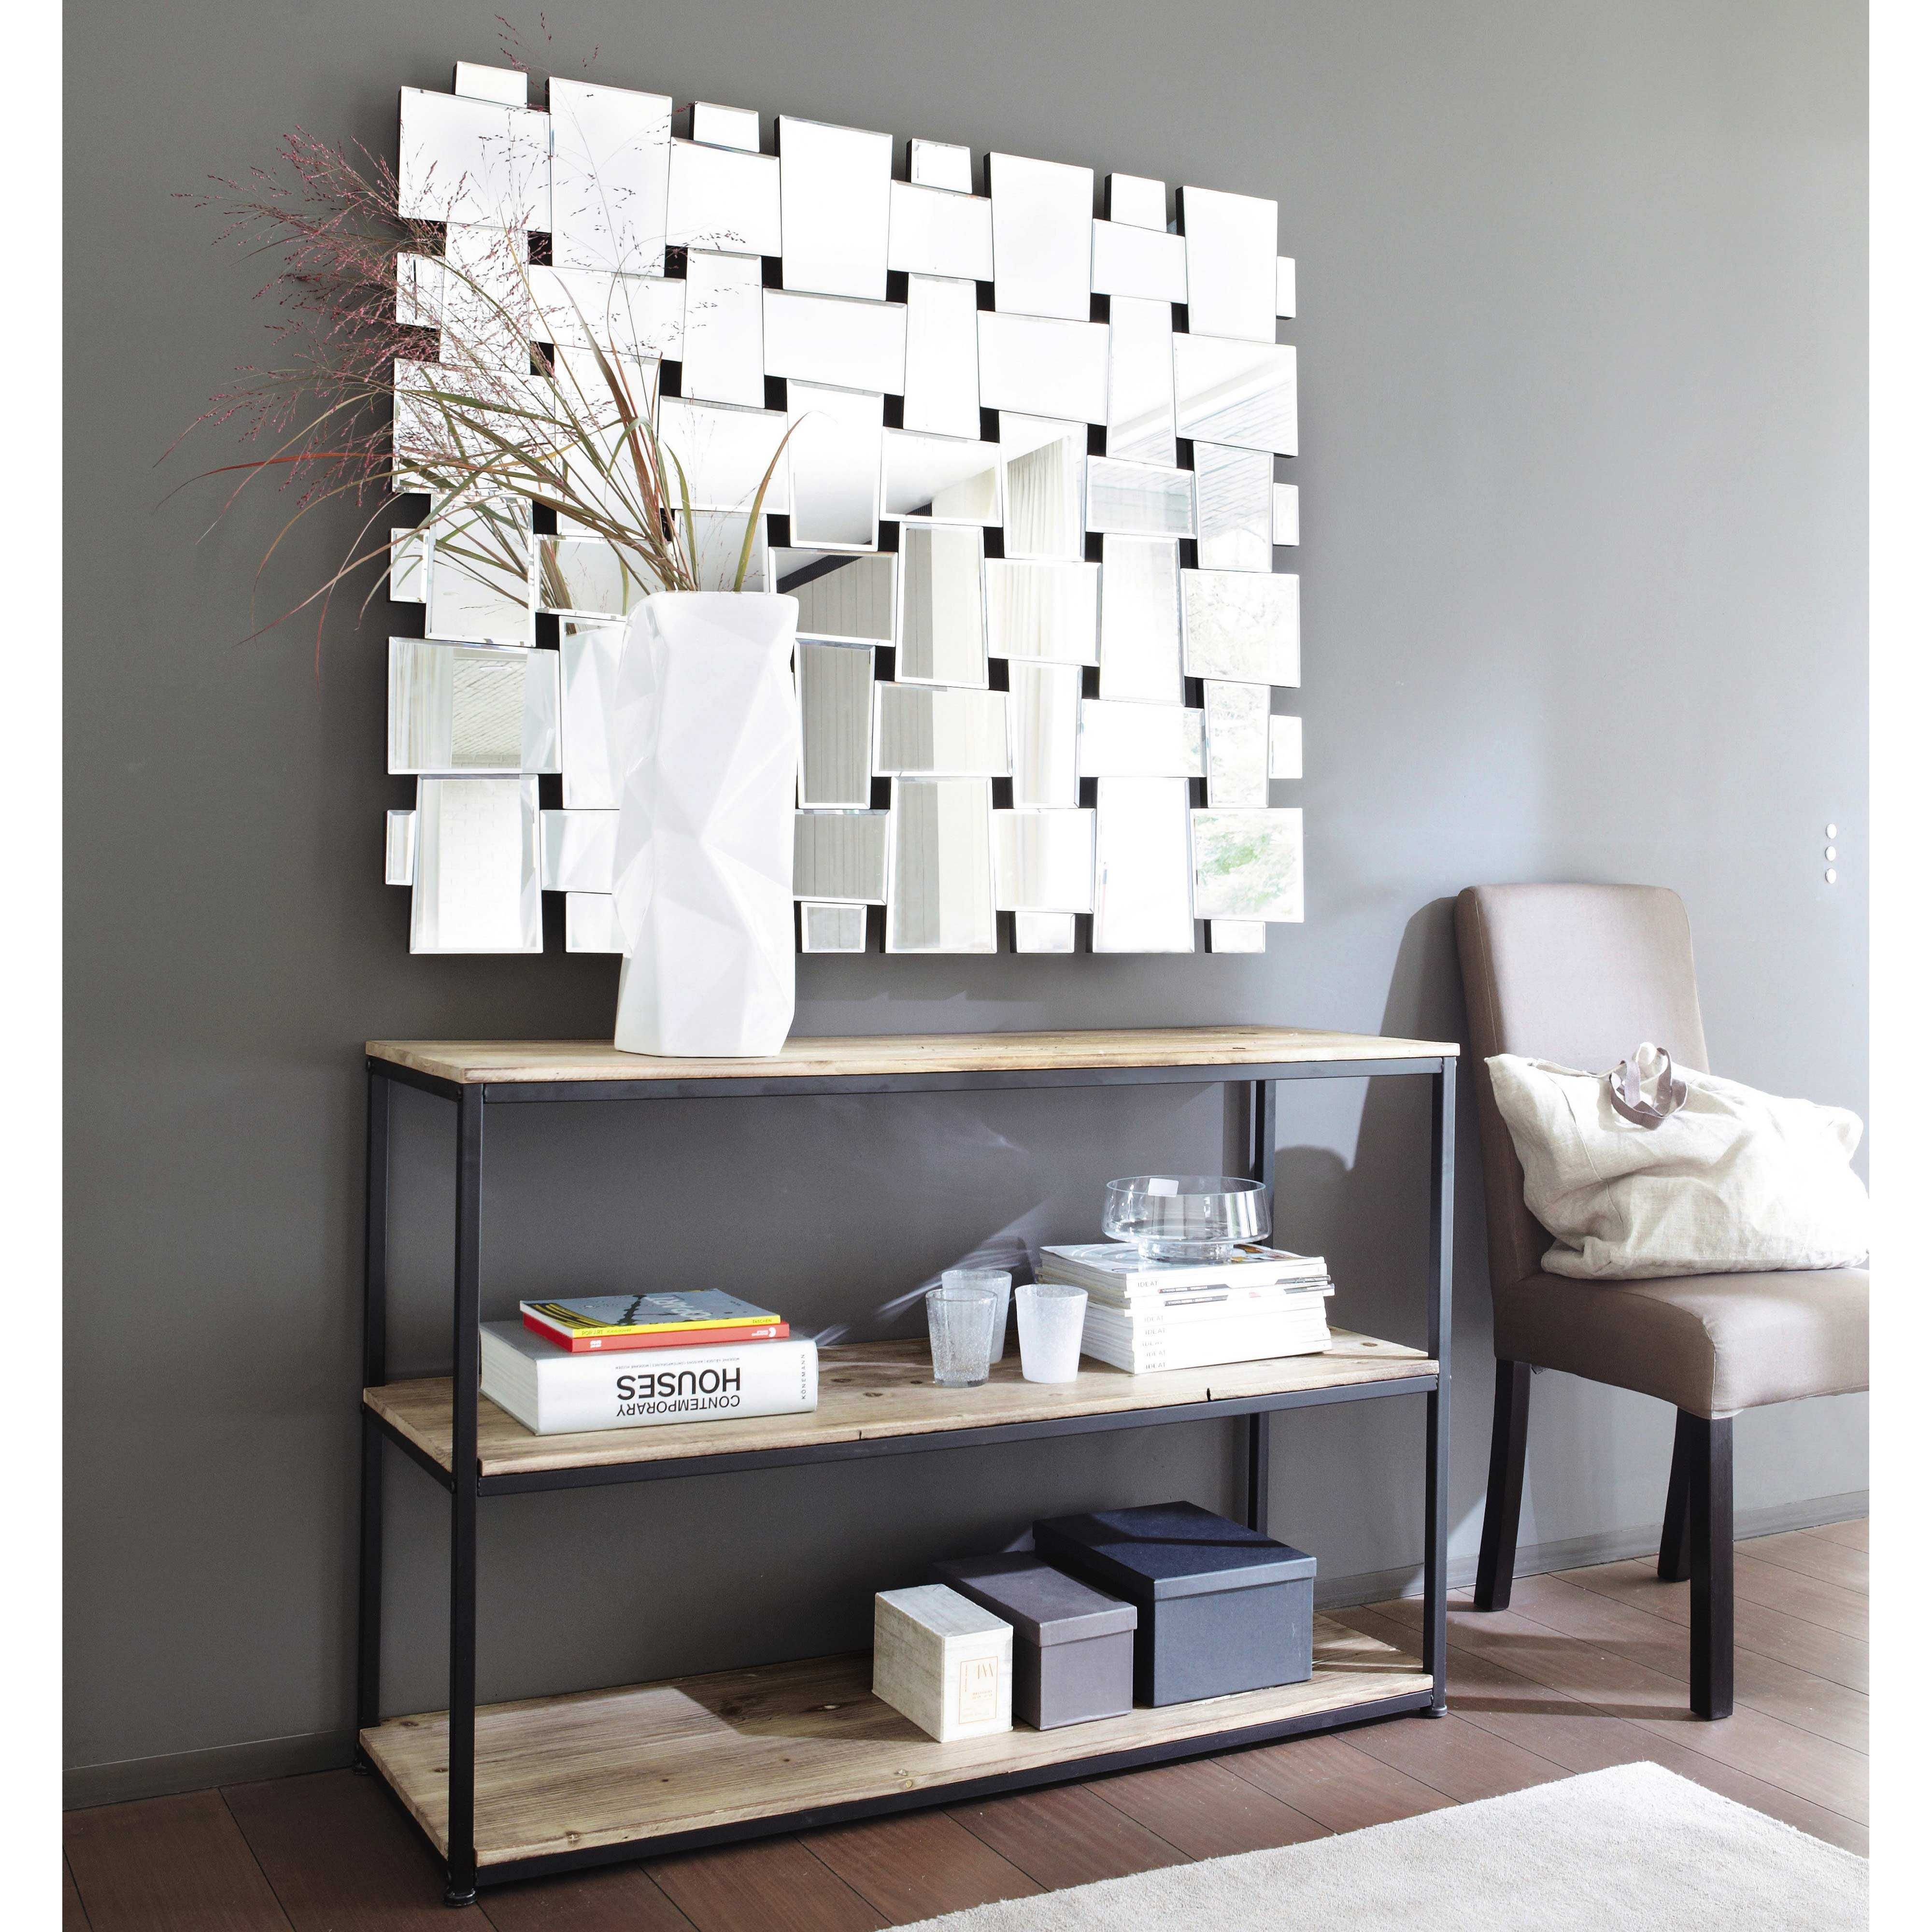 Solid Fir and Black Metal Console | Hallways We Love | Pinterest